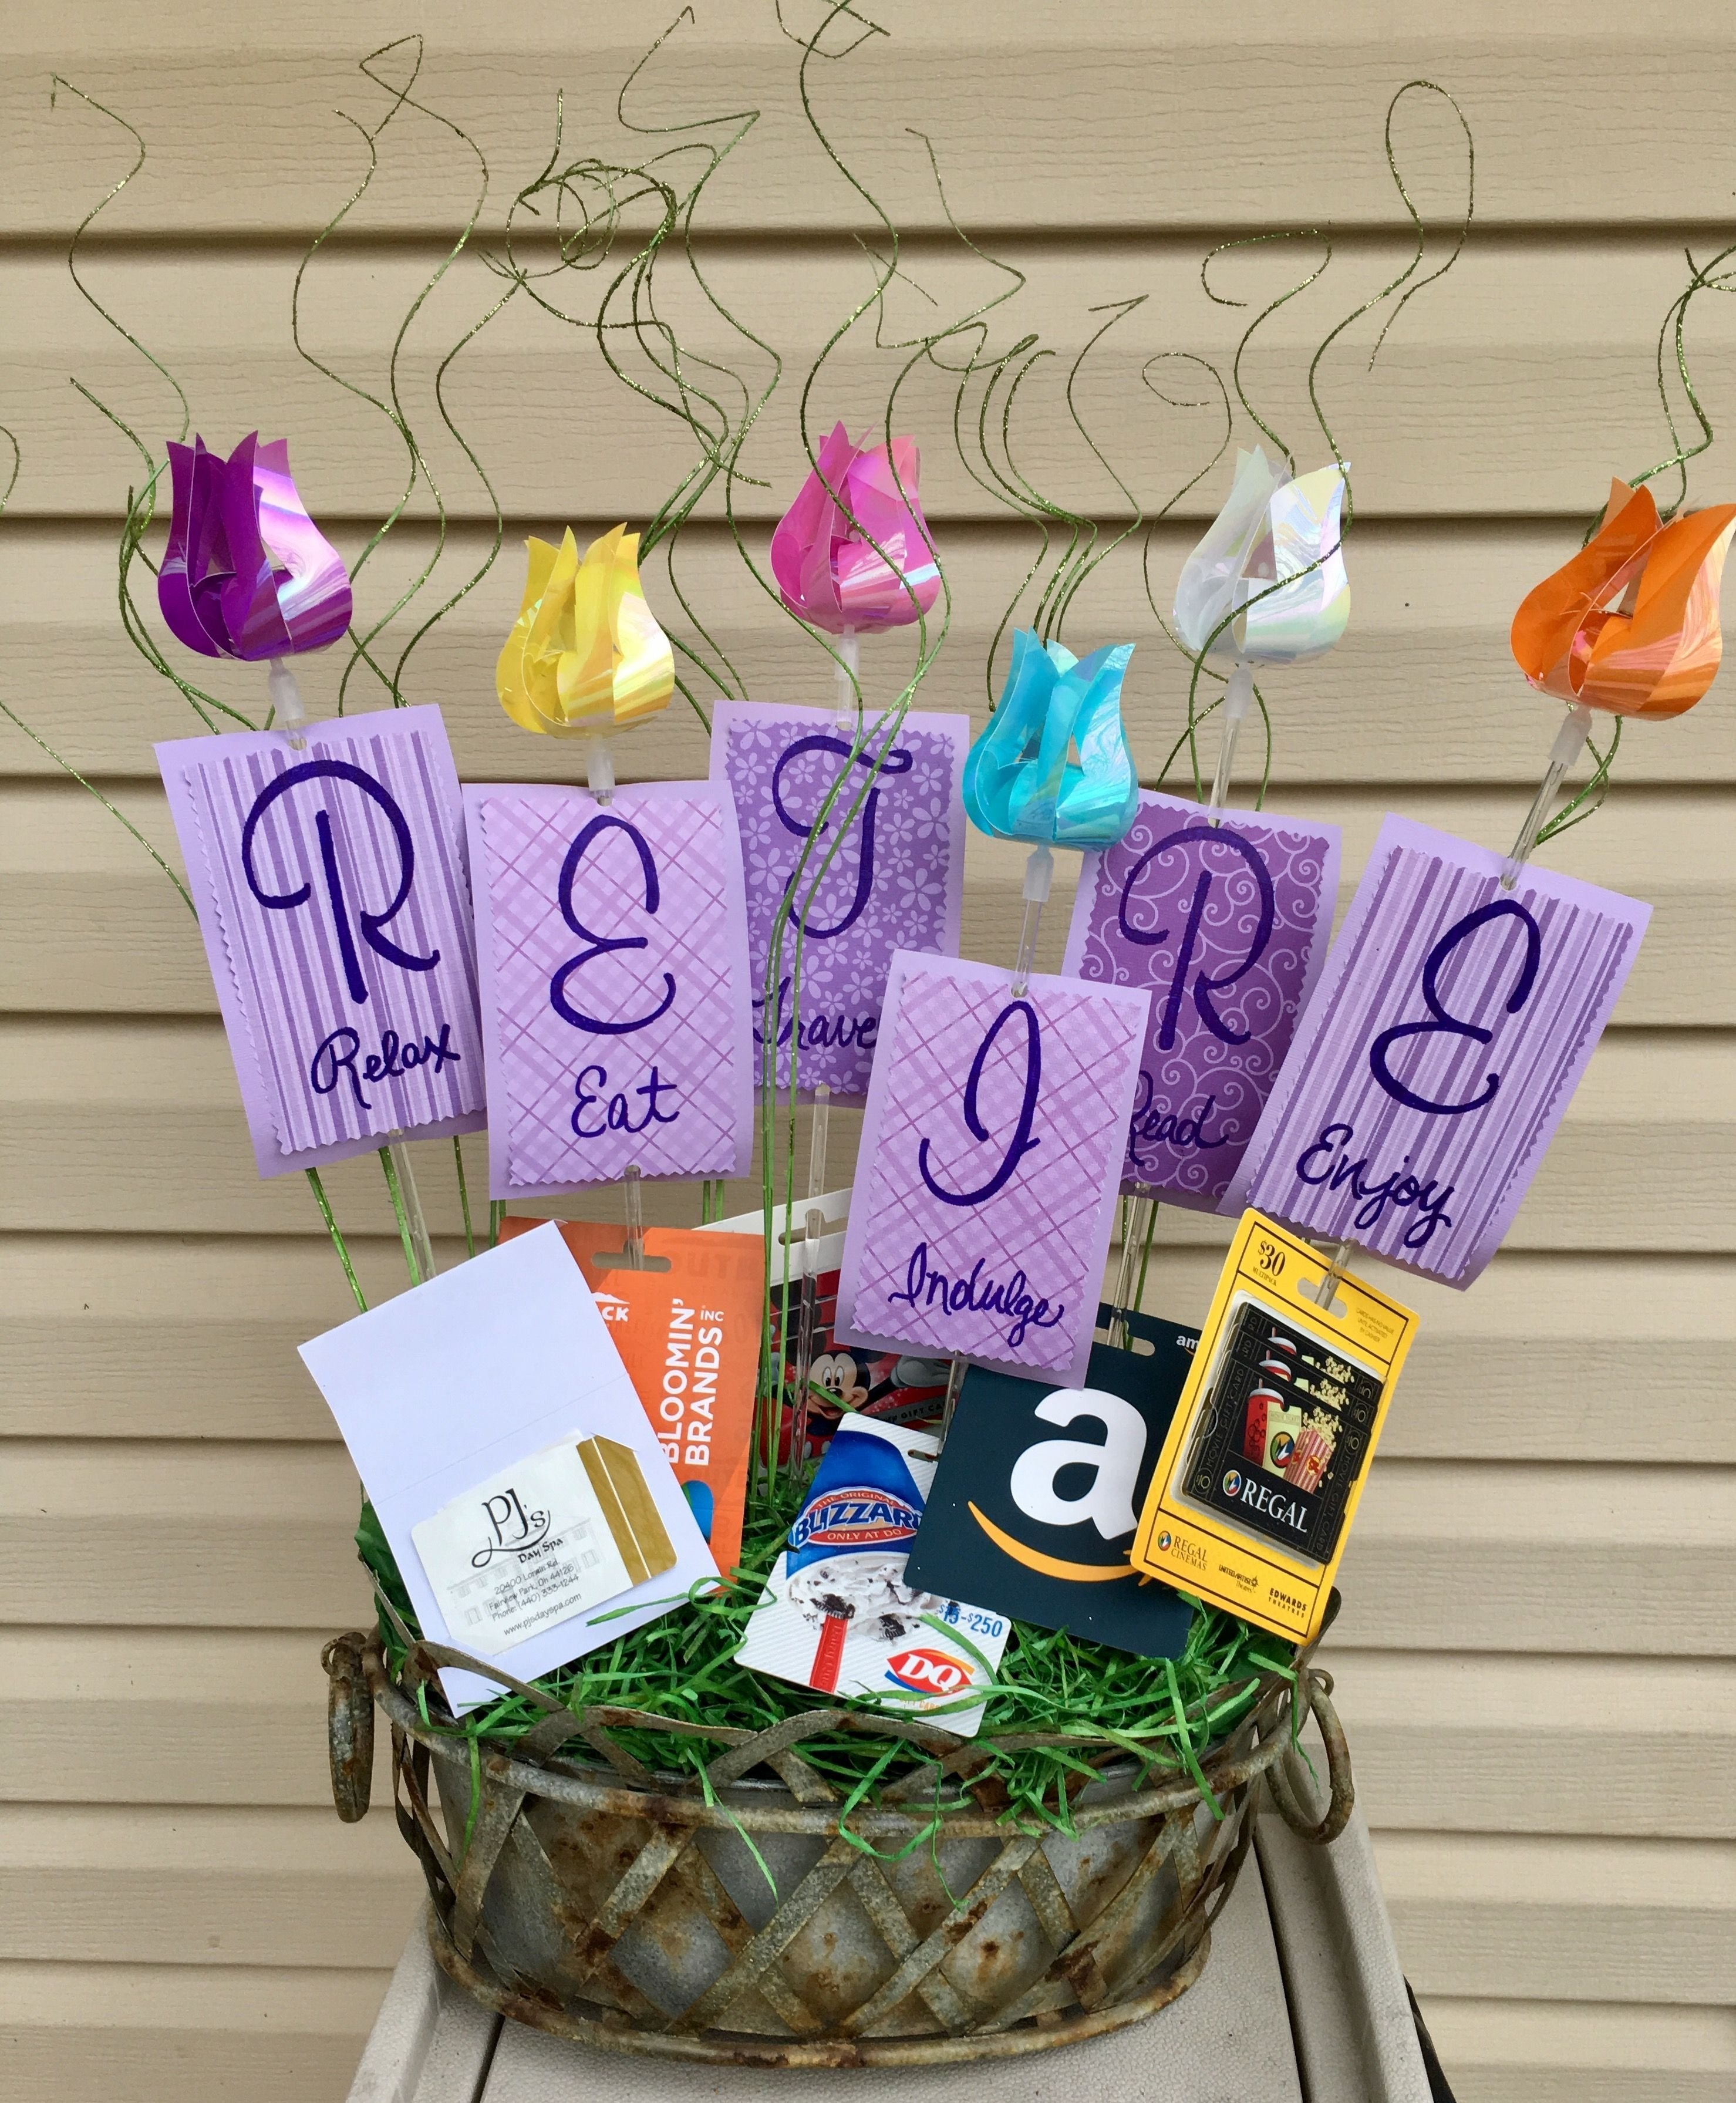 10 Elegant Gift Card Ideas For Women retirement gift basket with gift cards relax eat travel indulge 3 2020